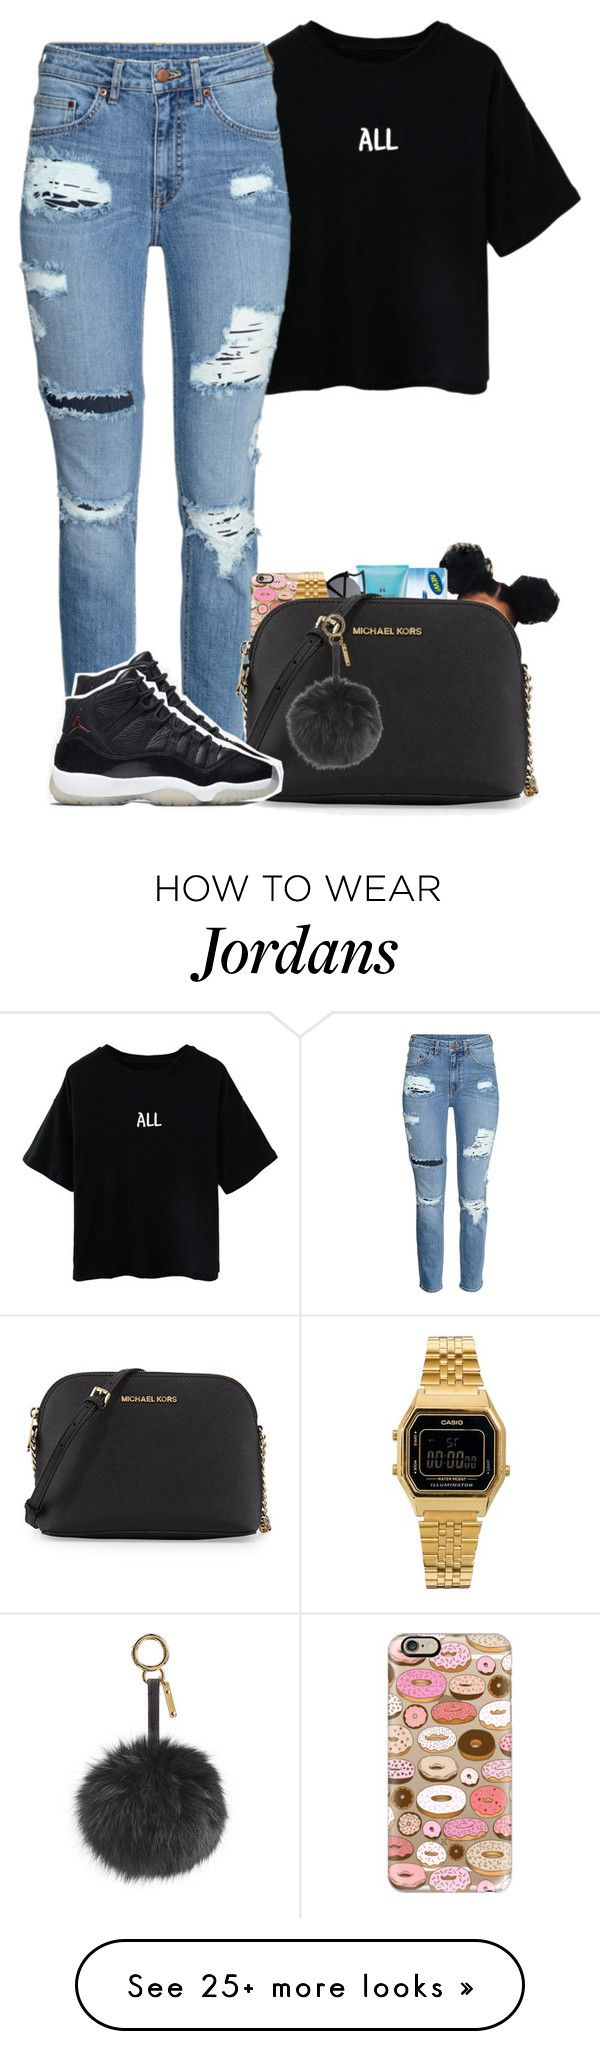 """9:06"" by bryannilove on Polyvore featuring Casetify, Victoria's Secret, Casio, MICHAEL Michael Kors, NIKE and Fendi"